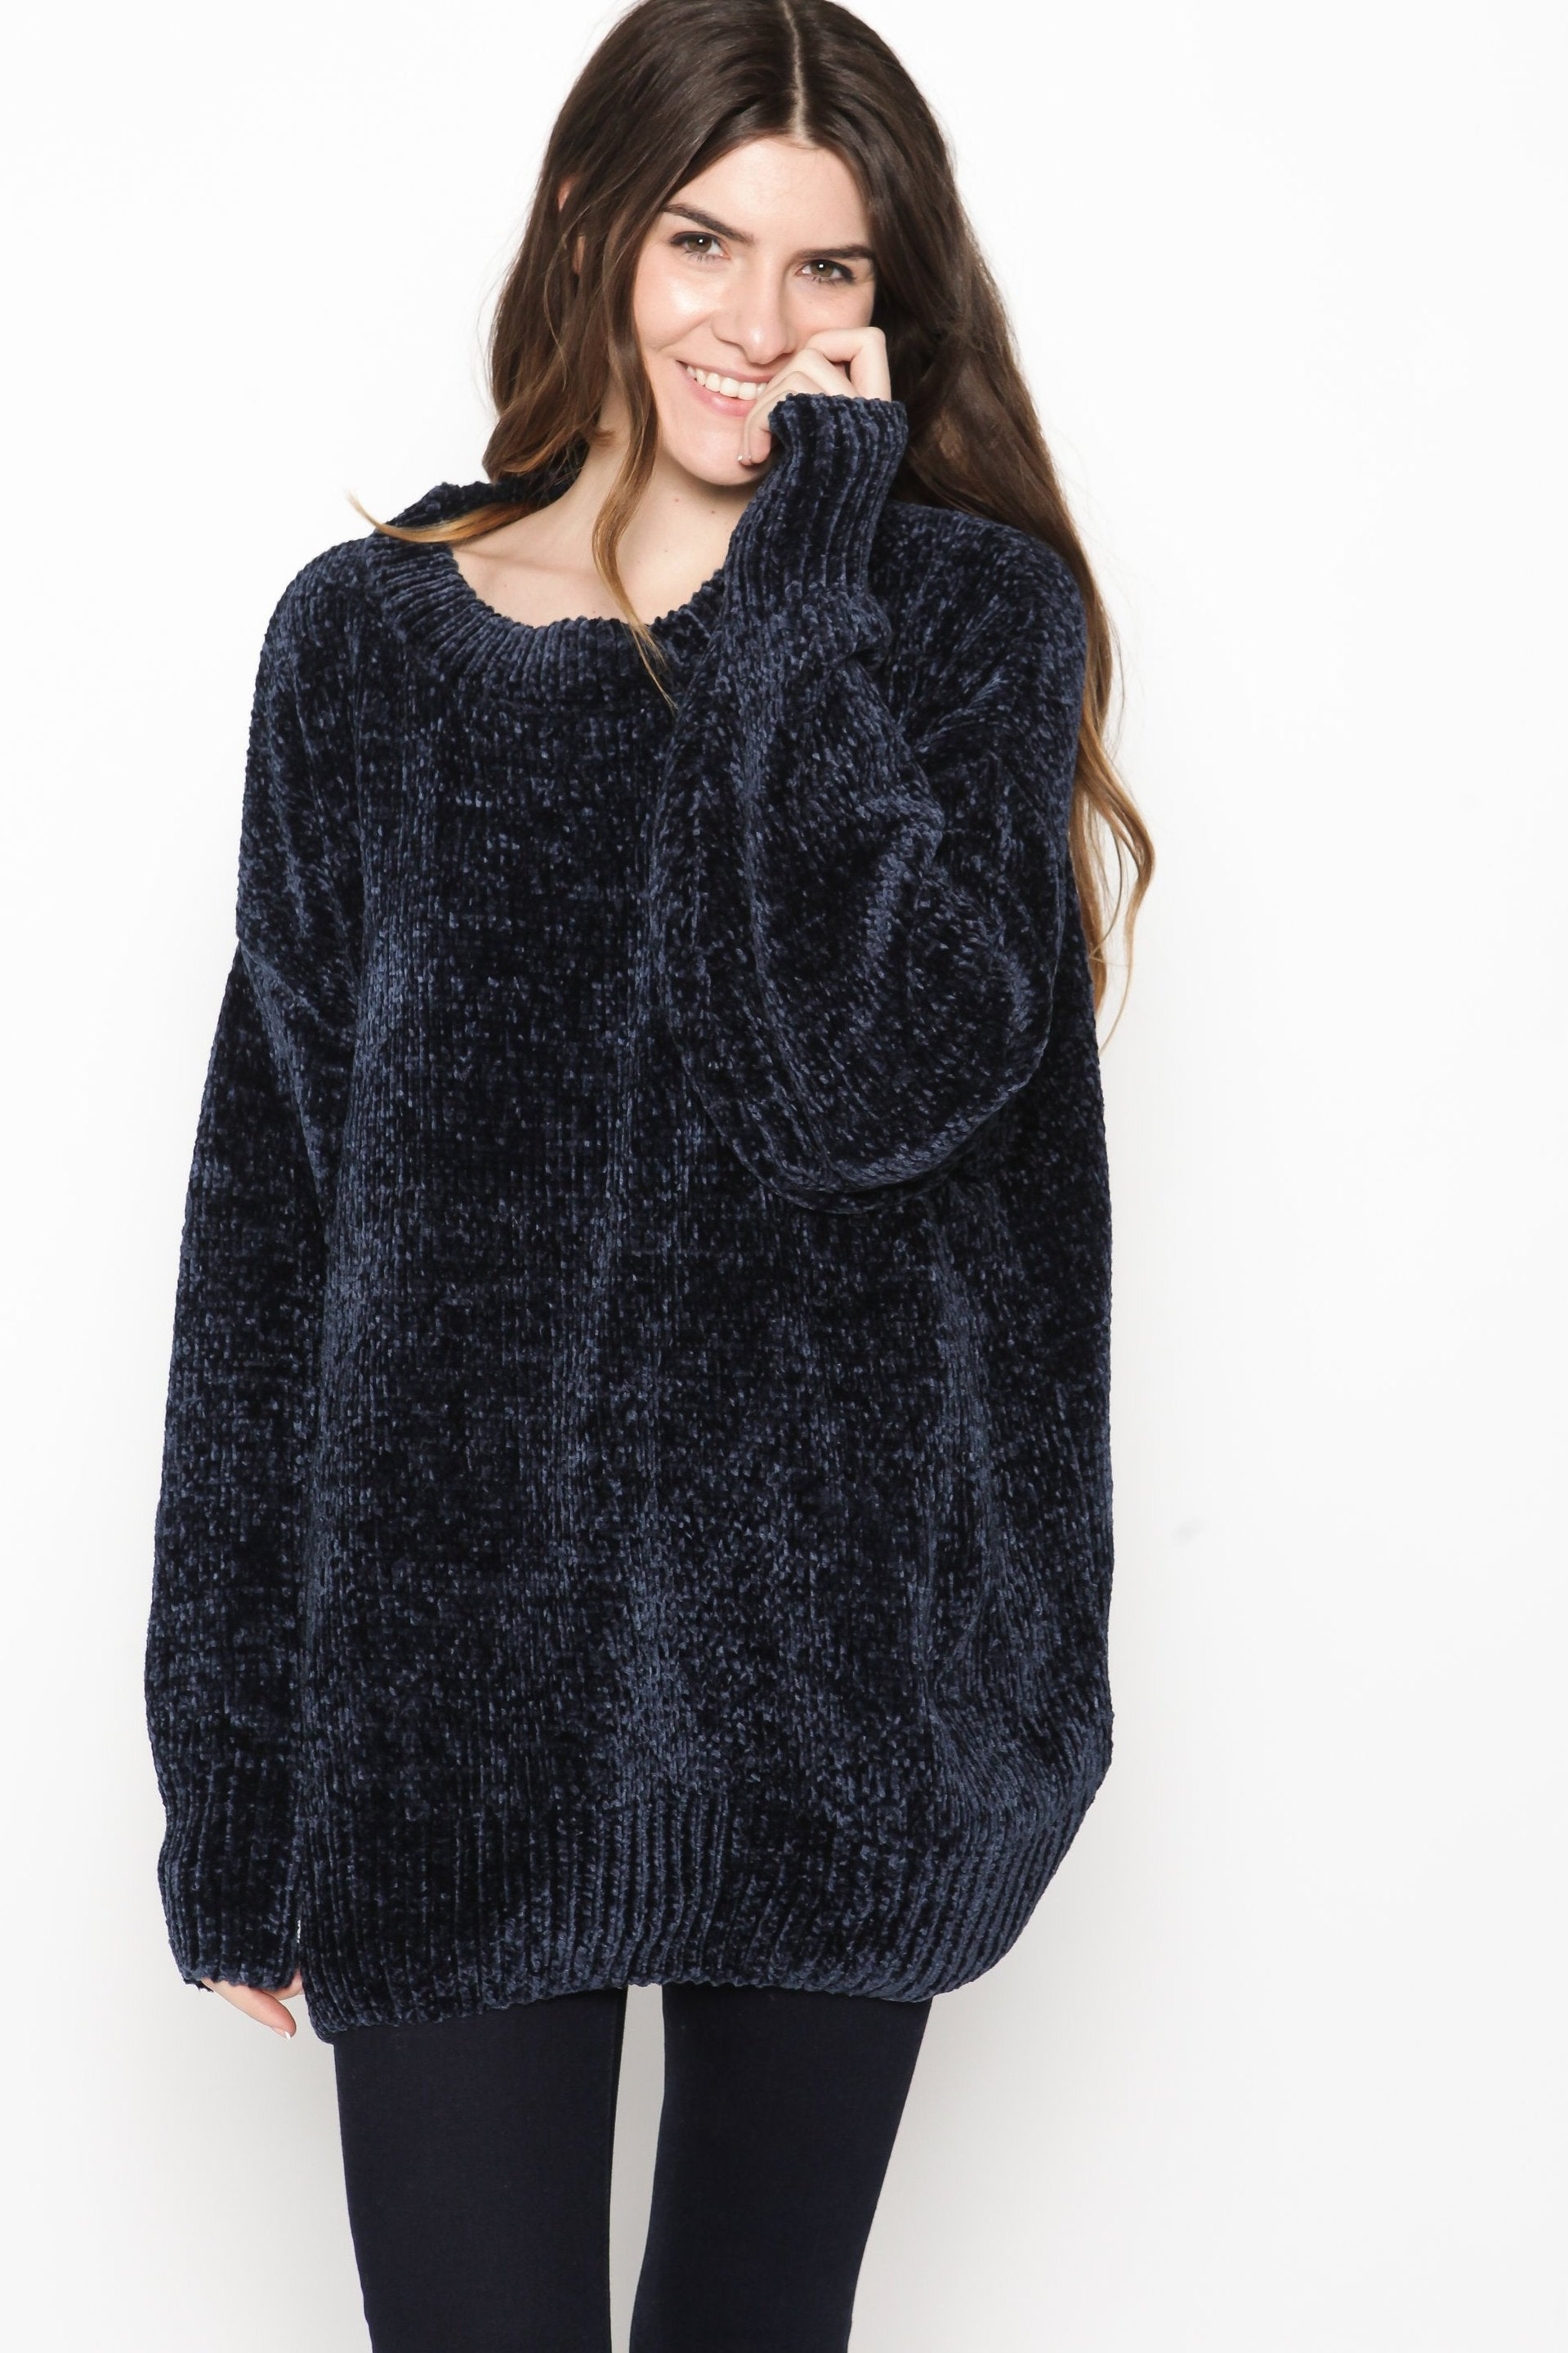 Adele Chenille Sweater - Navy Cardigan & Sweaters - Vinnie Louise